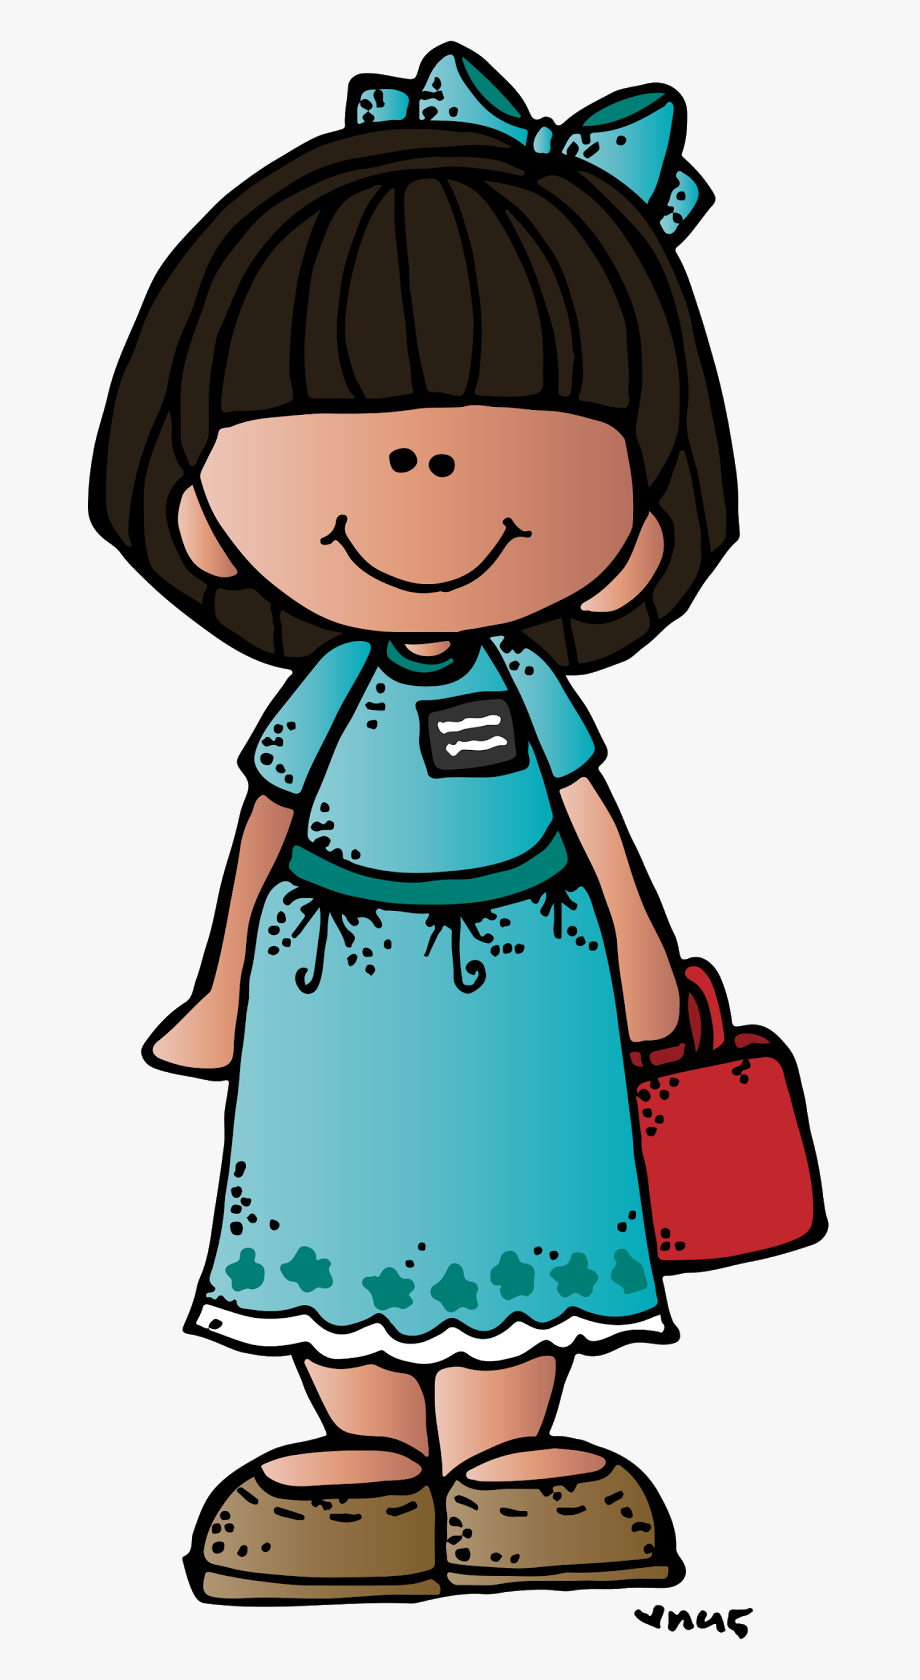 Lds clipart melonheadz. Illustrating future missionaries freebies